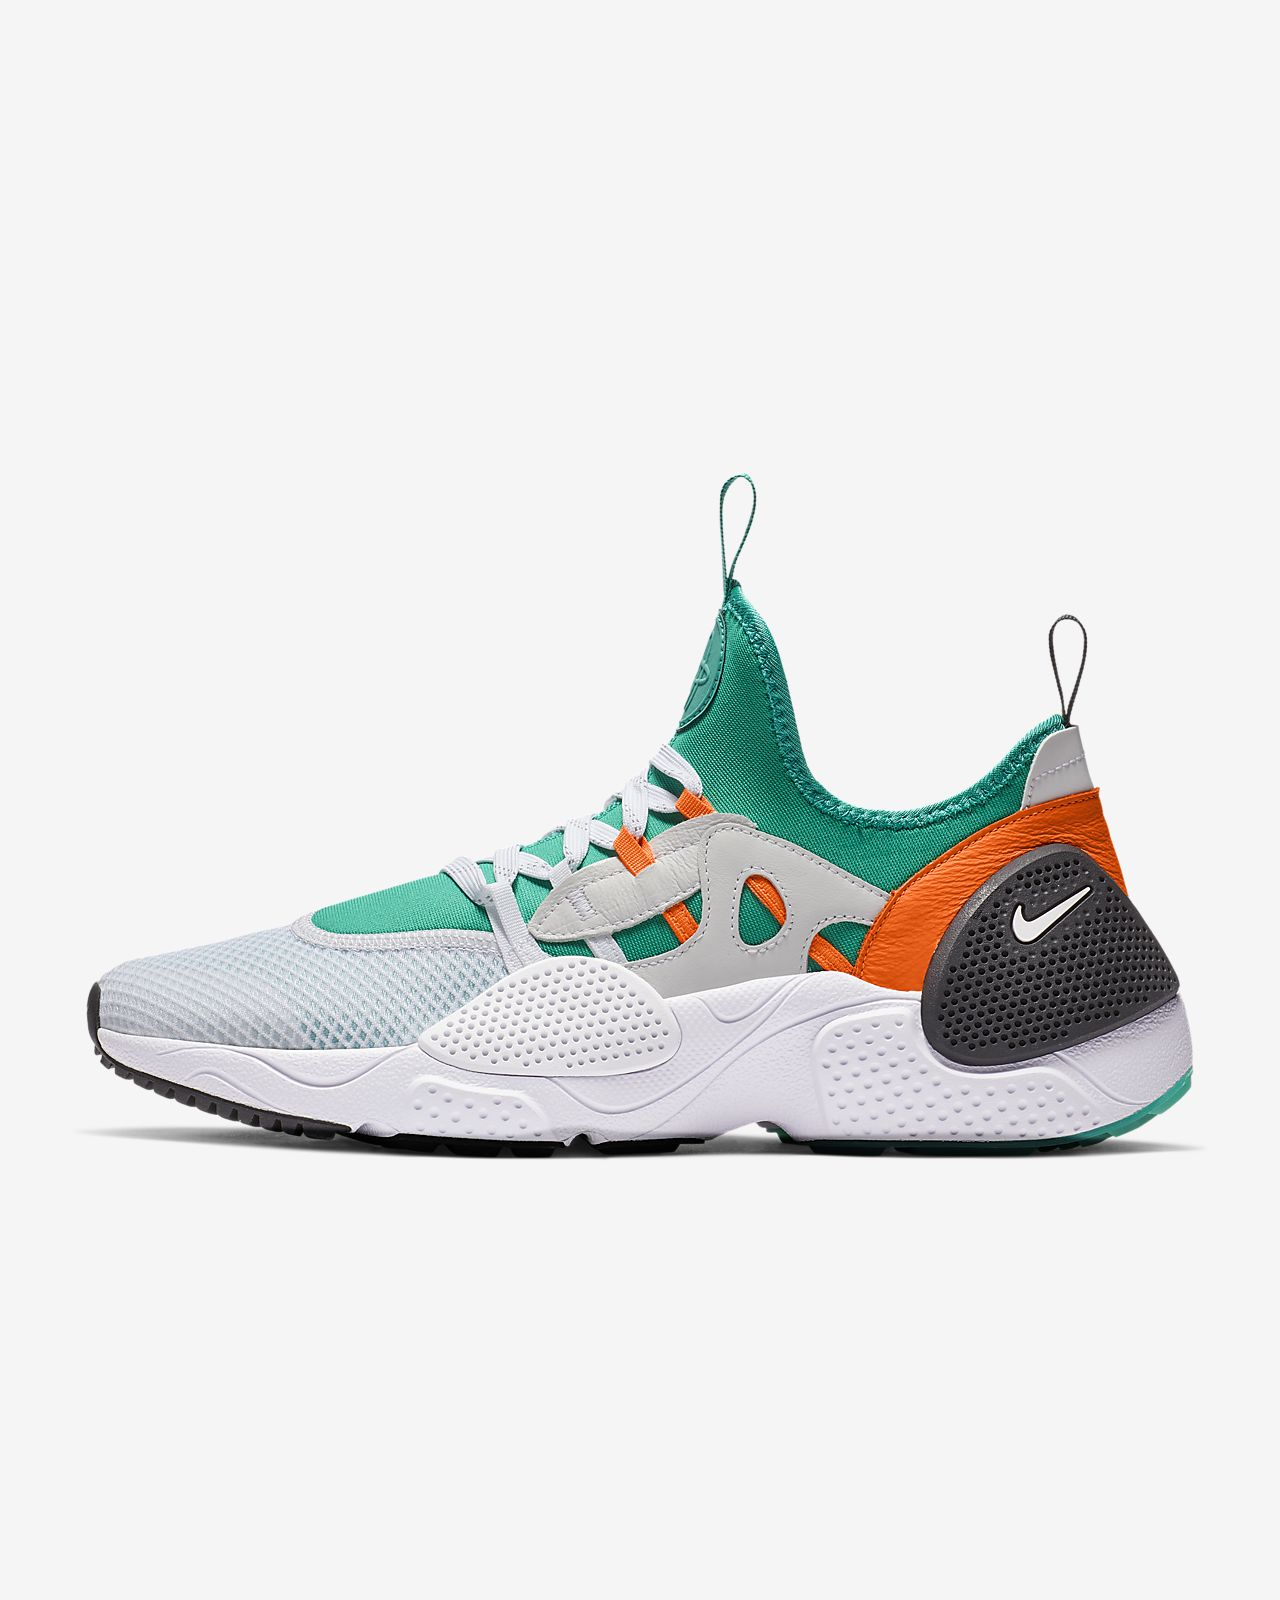 low priced 4eee5 a3506 ... Nike Huarache EDGE TXT QS Mens Shoe